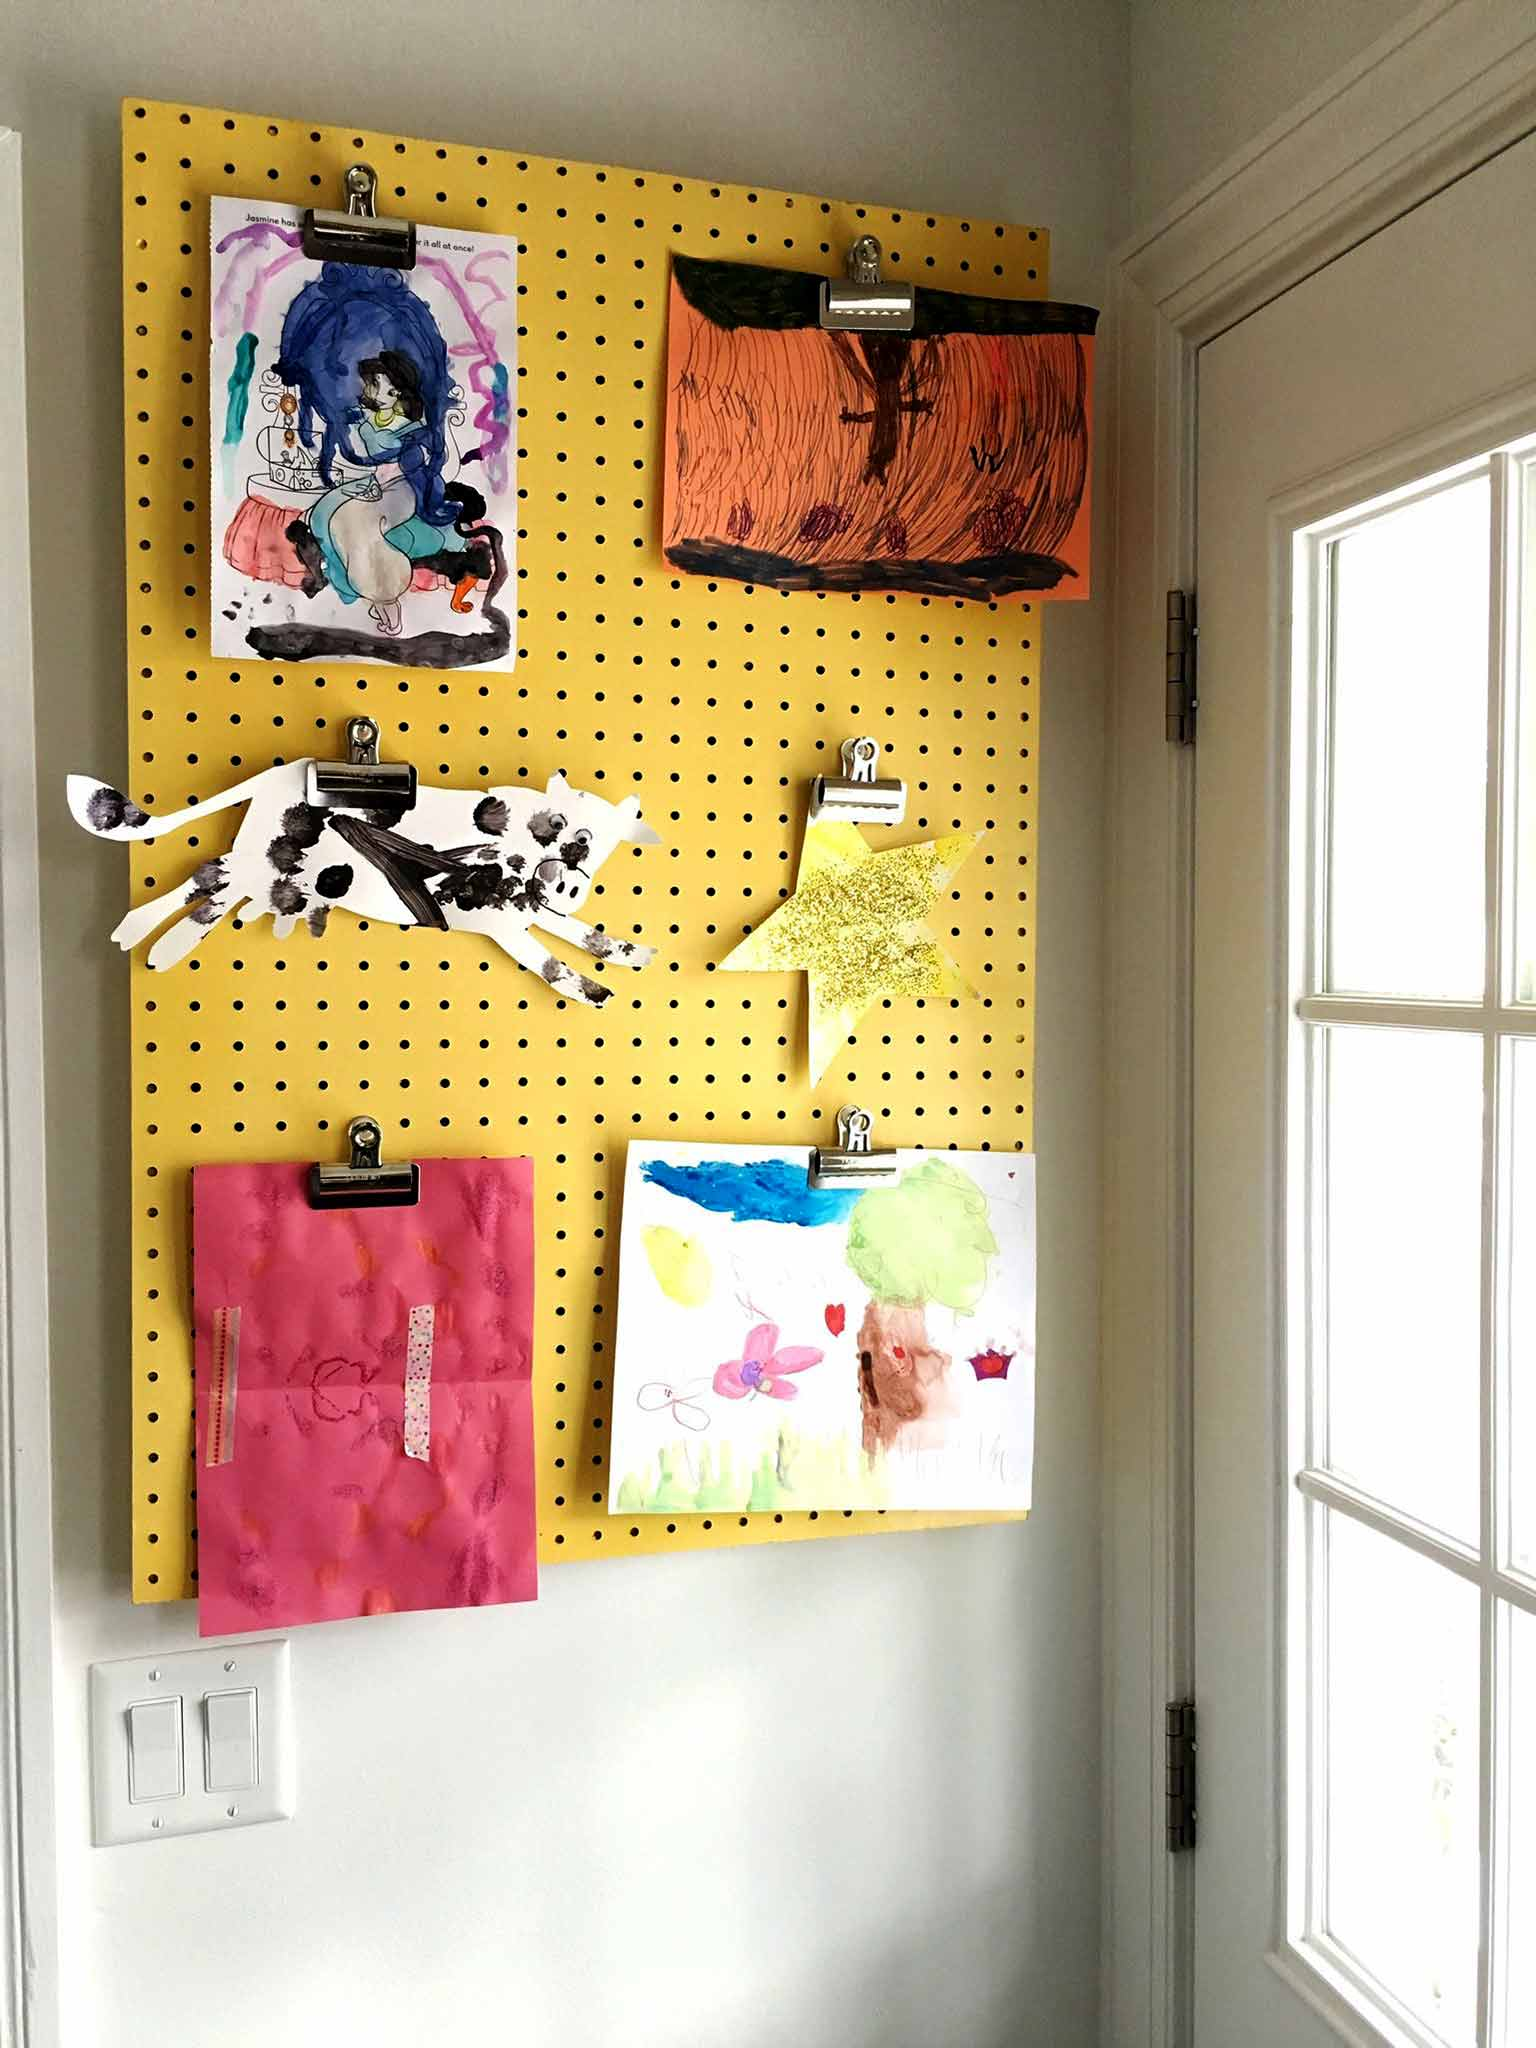 Old Pegboard Display Board for Kids Artwork - Covering up an electrical panel - That Homebird Life Blog